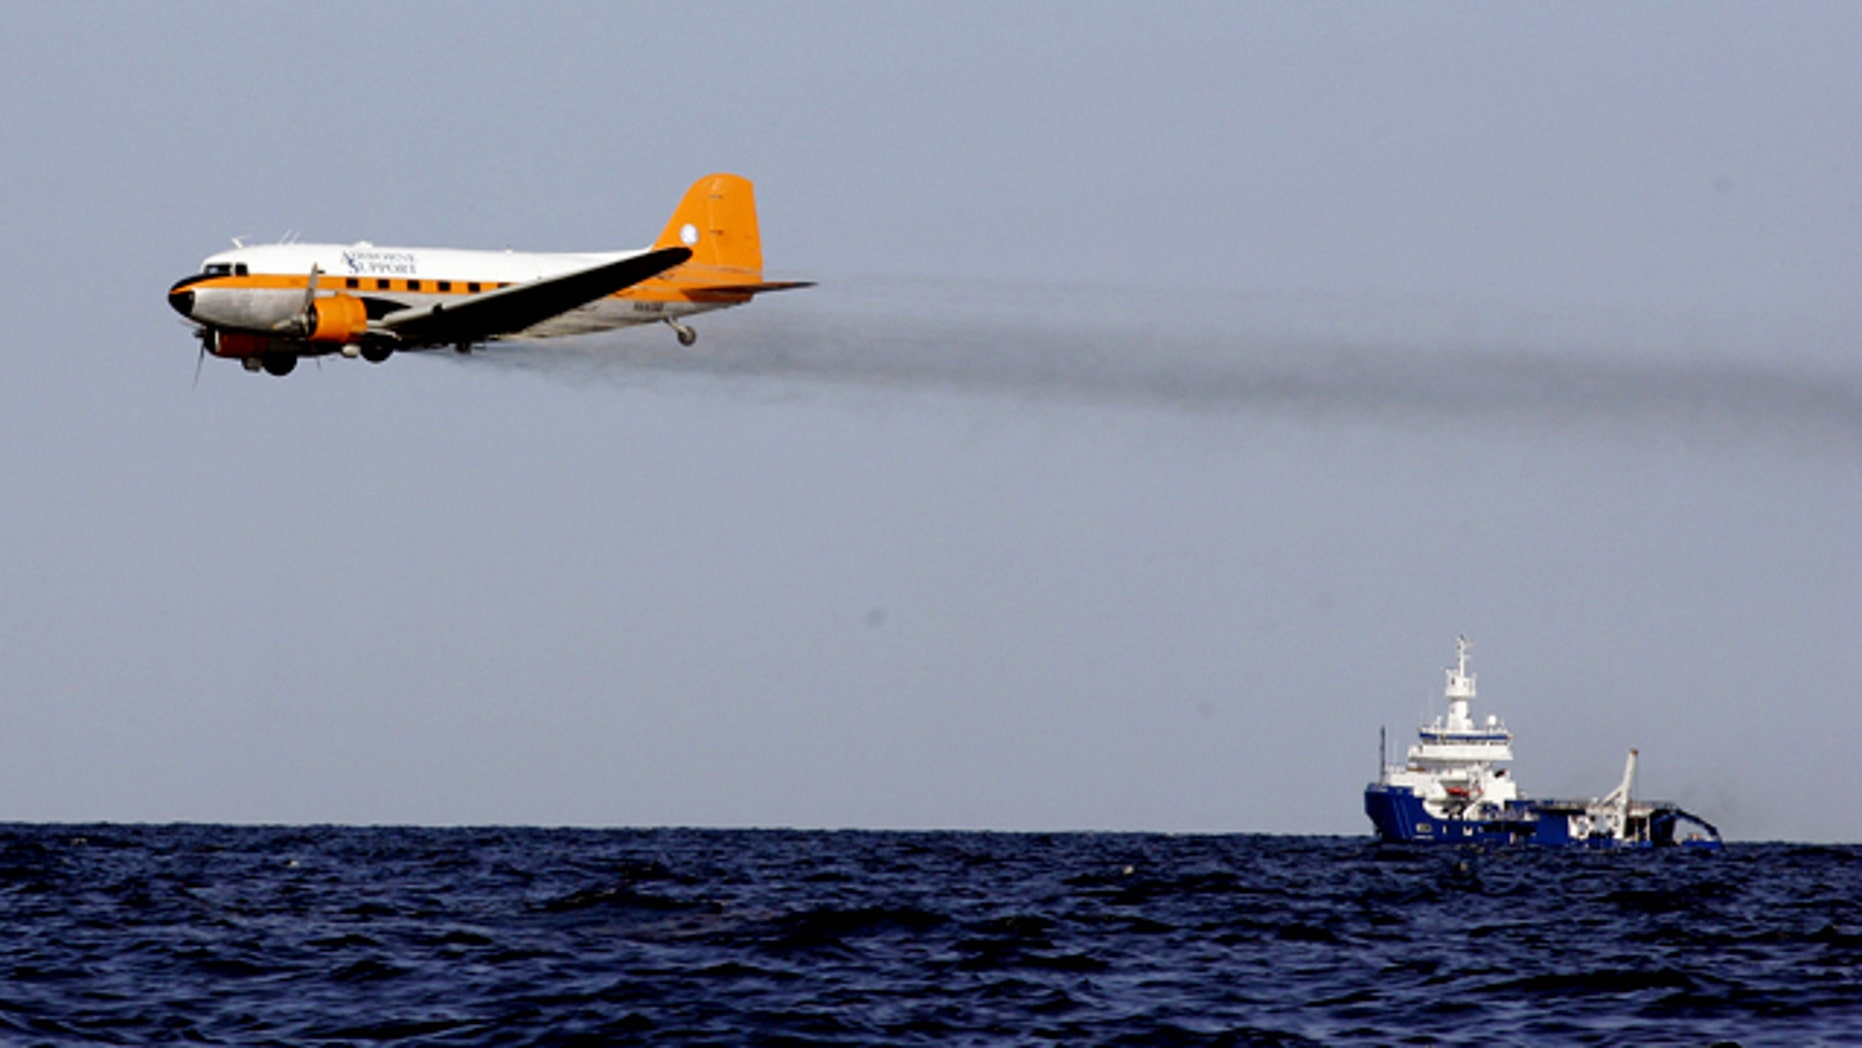 A dispersant plane passes over an oil skimmer as it cleans oil from a leaking pipeline that resulted from last week's explosion and collapse of the Deepwater Horizon oil rig in the Gulf of Mexico near the coast of Louisiana Tuesday, April 27, 2010.